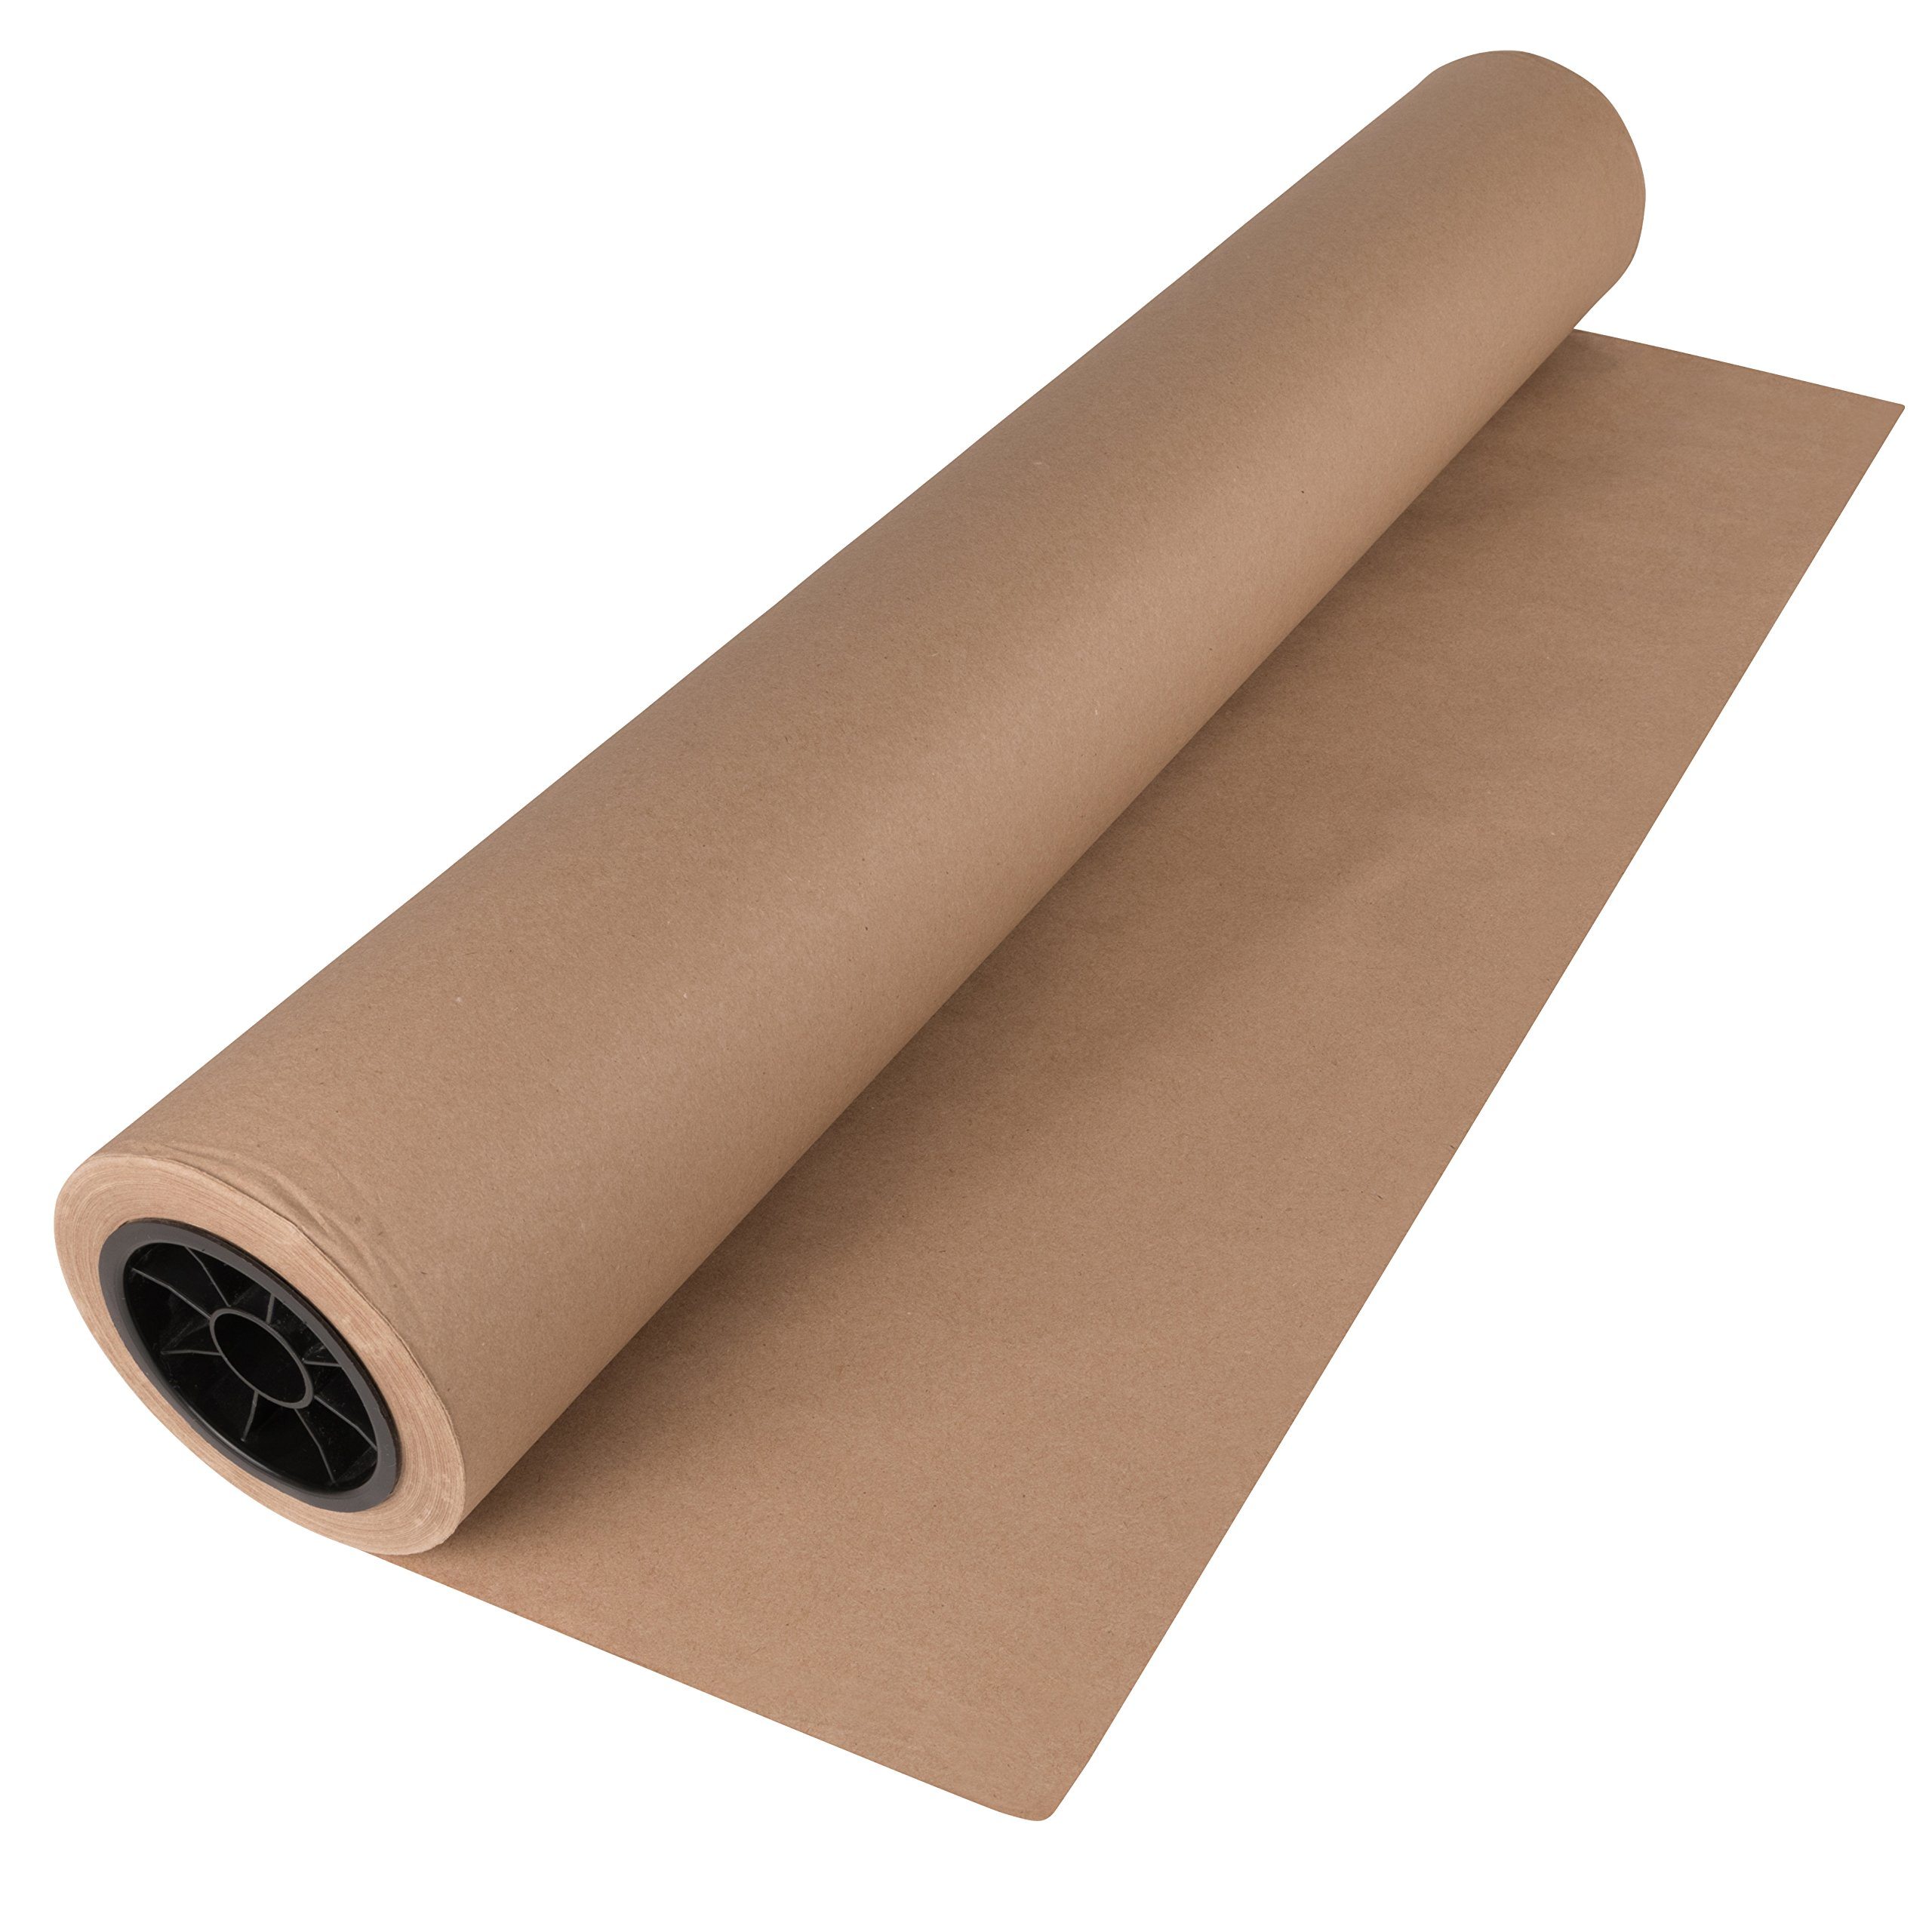 Brown Kraft Paper Roll 30 x 2400 Inches (200 Feet Long) Single Roll, 100% Recycled Materials, Wrapping Paper, DIY Gift Wrapping, Packing, Postal, Shipping by Woodpeckers by Woodpeckers